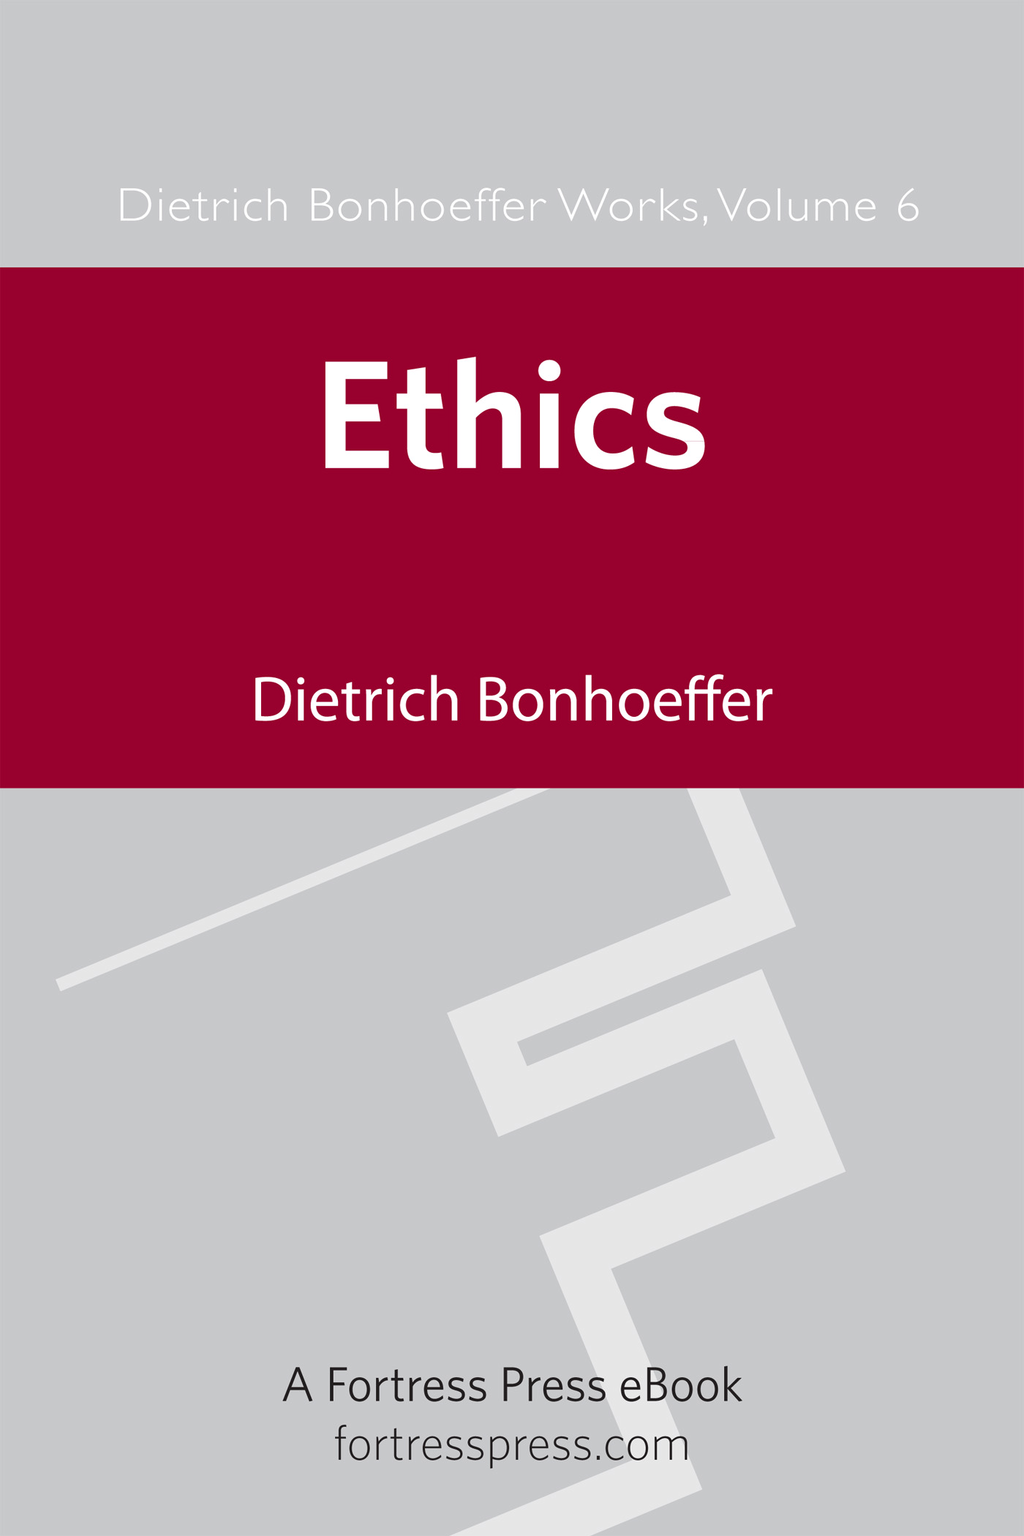 Ethics DBW Vol 6